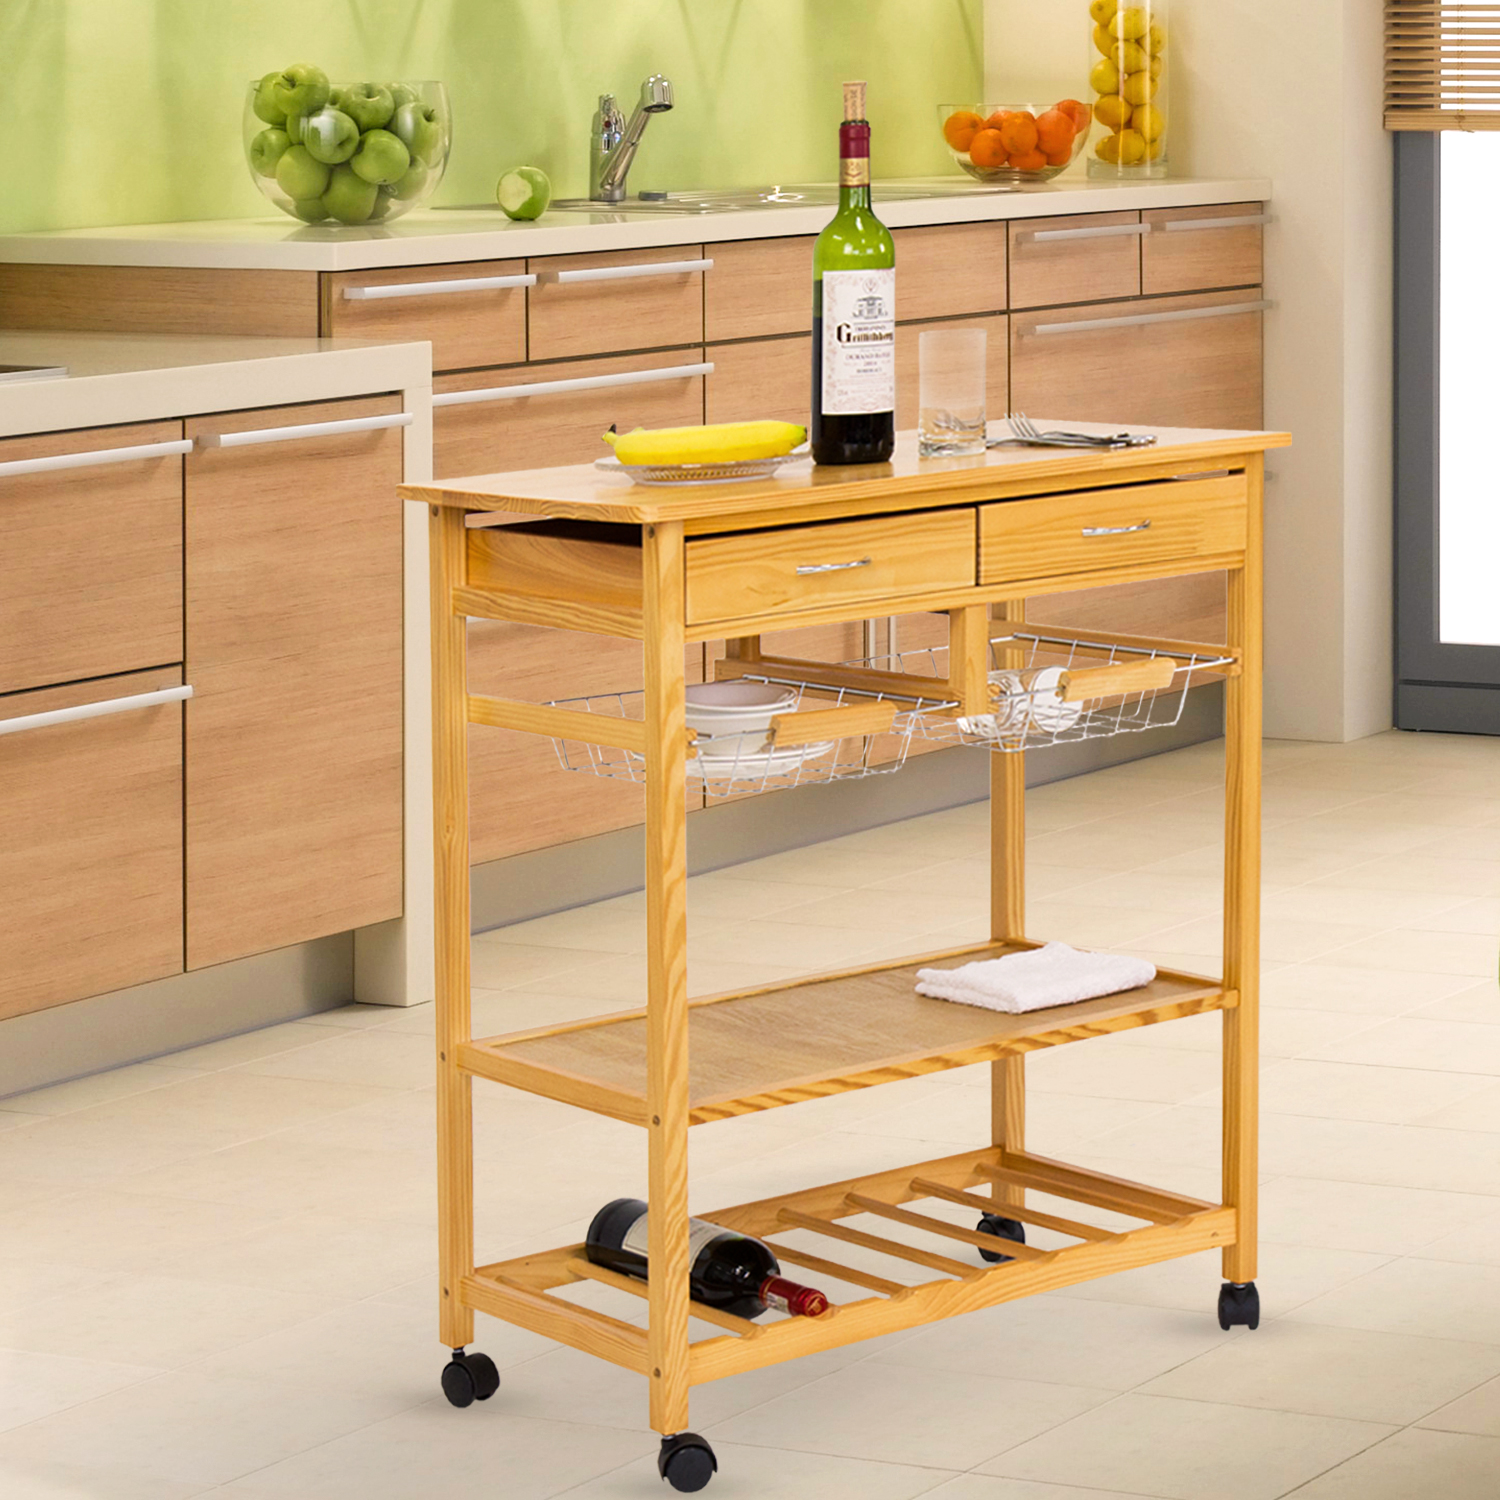 Kinbor Kitchen Cart on Wheels Wooden Trolley Work Island Storage with Drawers by